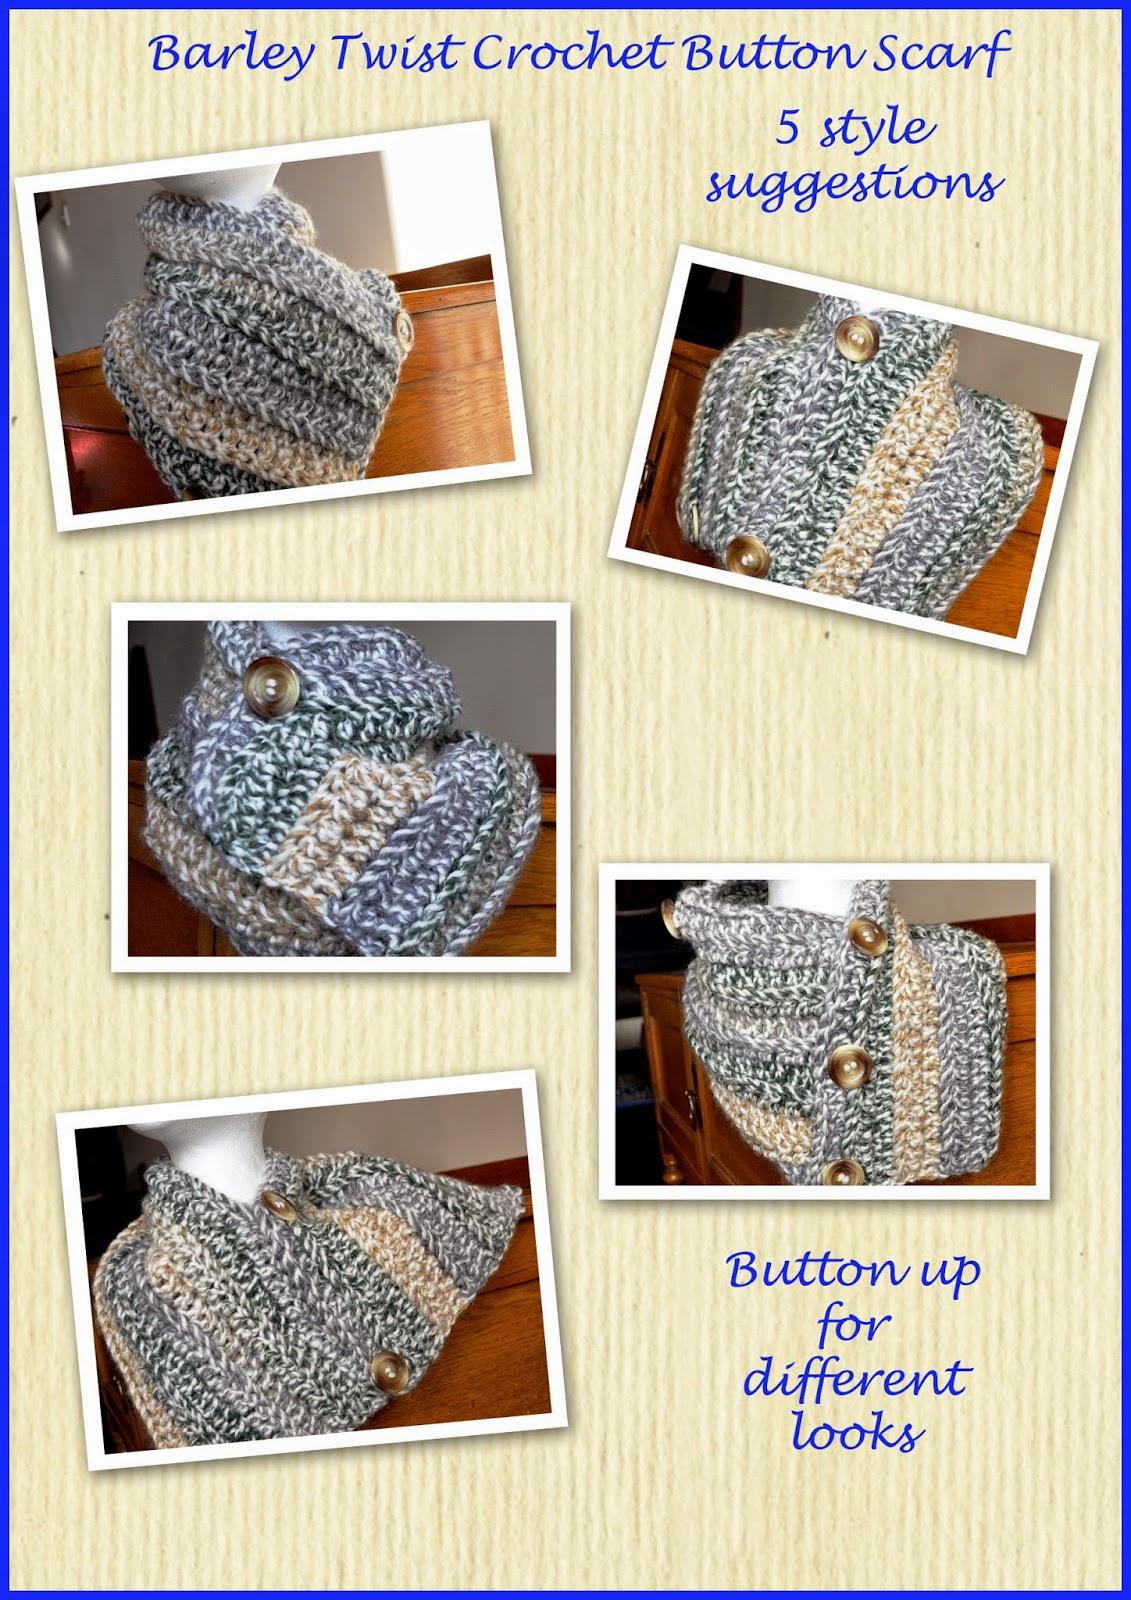 5 styles for your button scarf